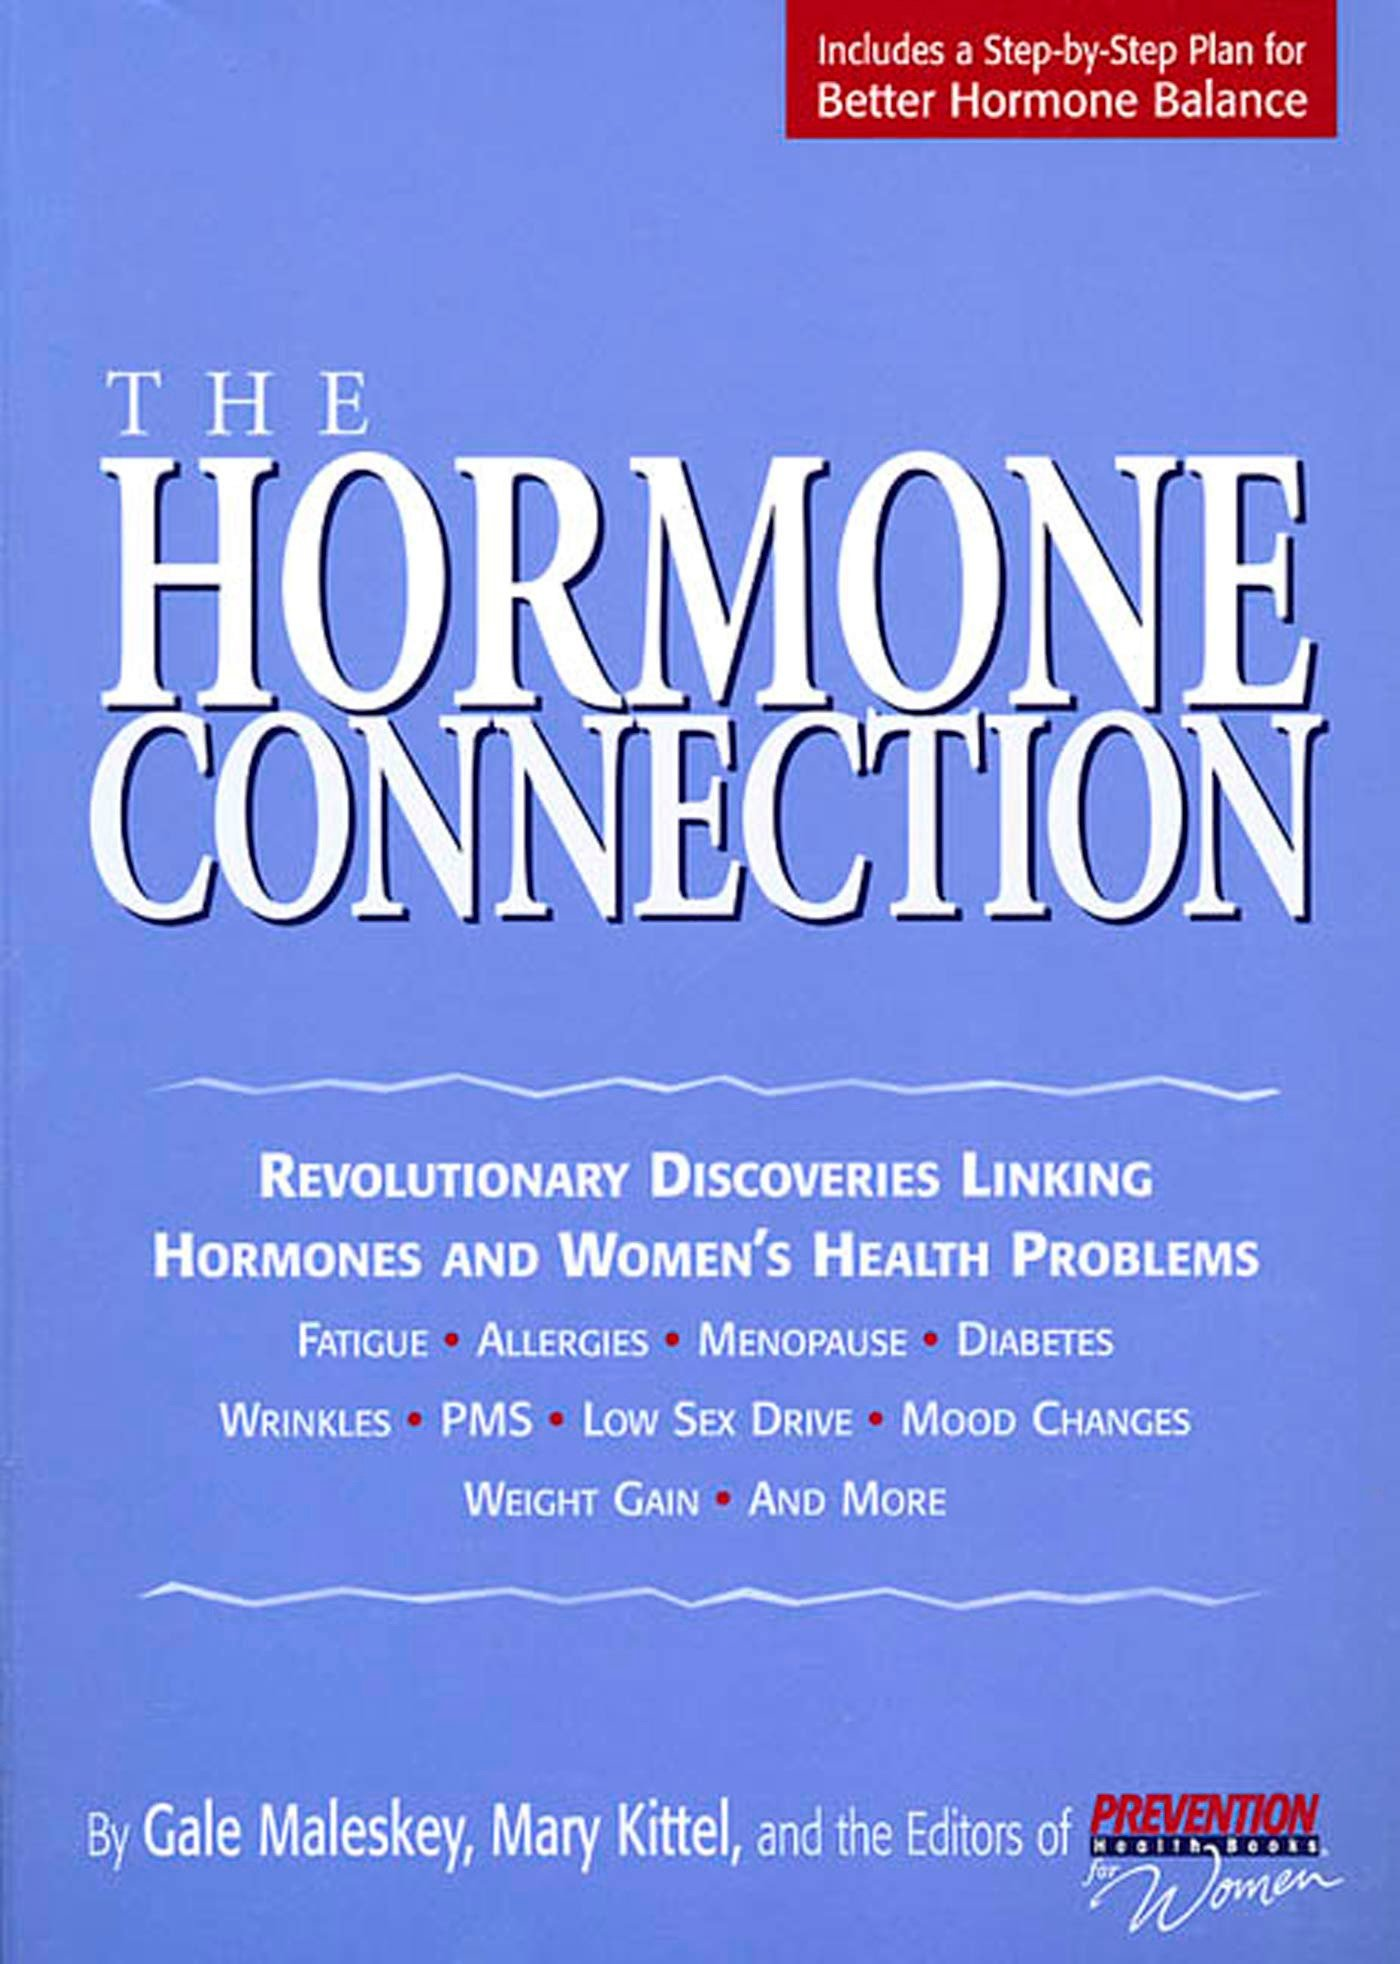 Download The Hormone Connection: Revolutionary Discoveries Linking Hormones and Women's Health Problems ebook